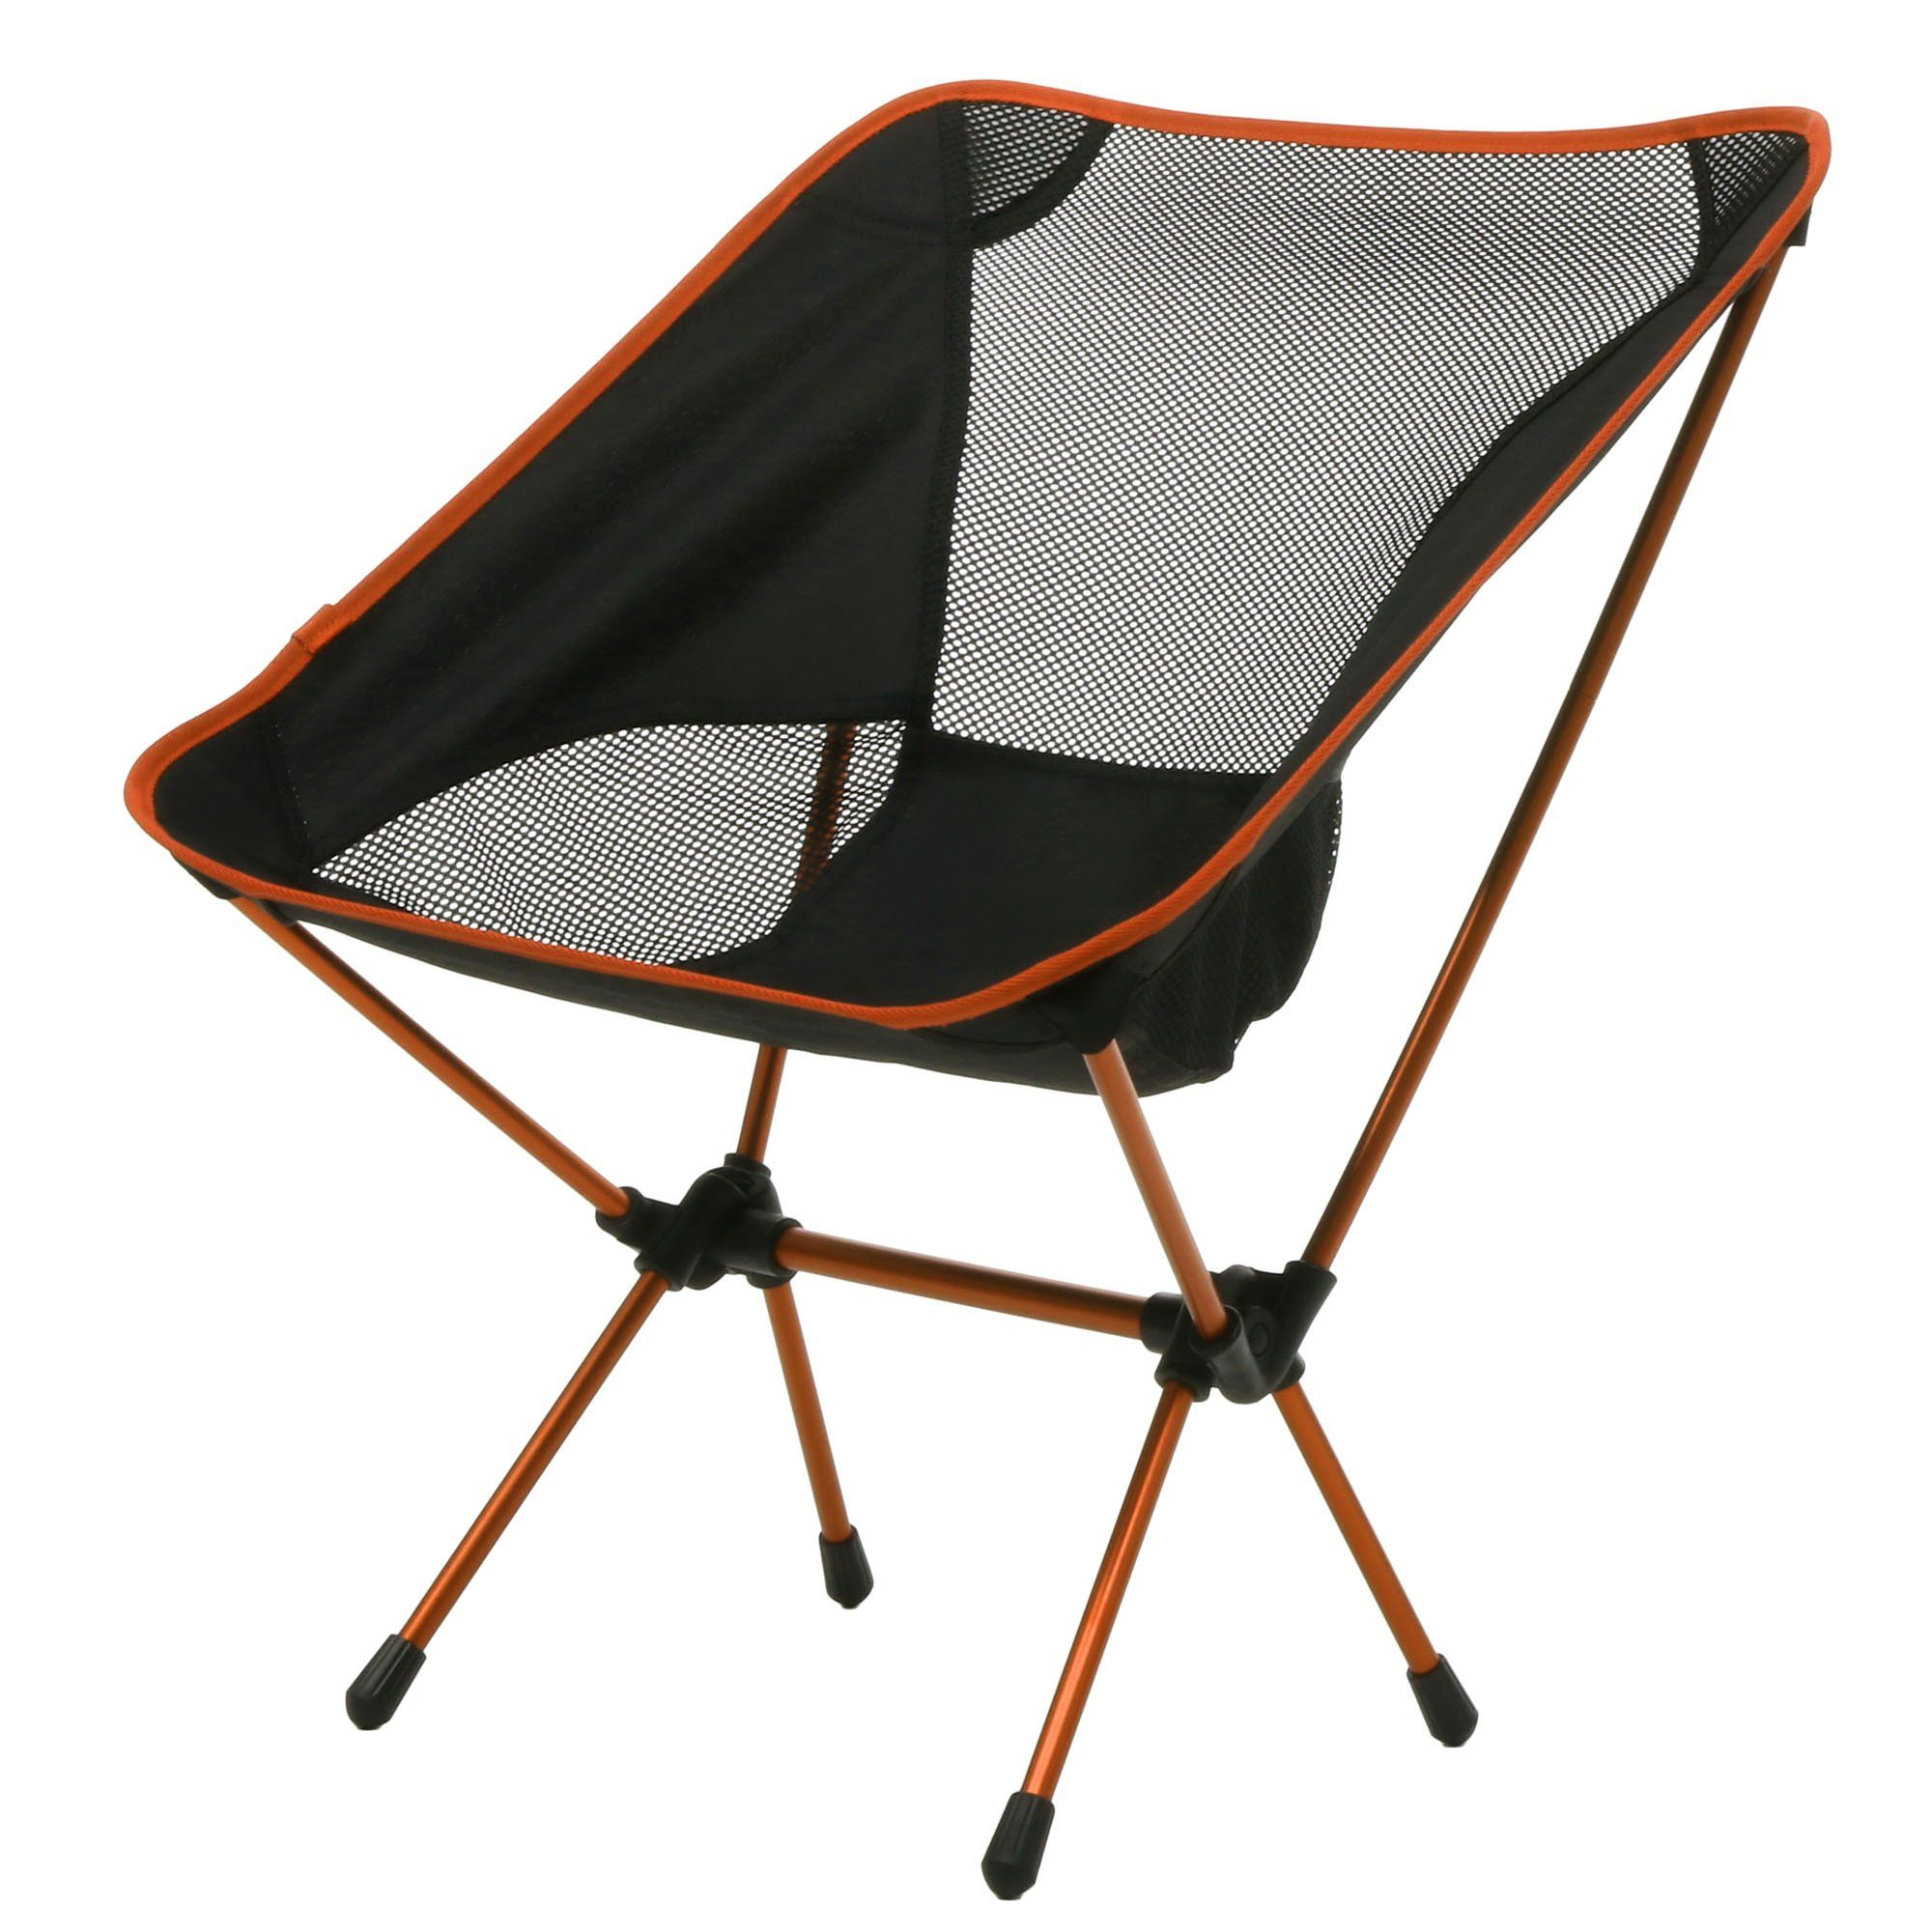 Ancheer Lightweight Portable Heavy Duty Folding Ground Chair with